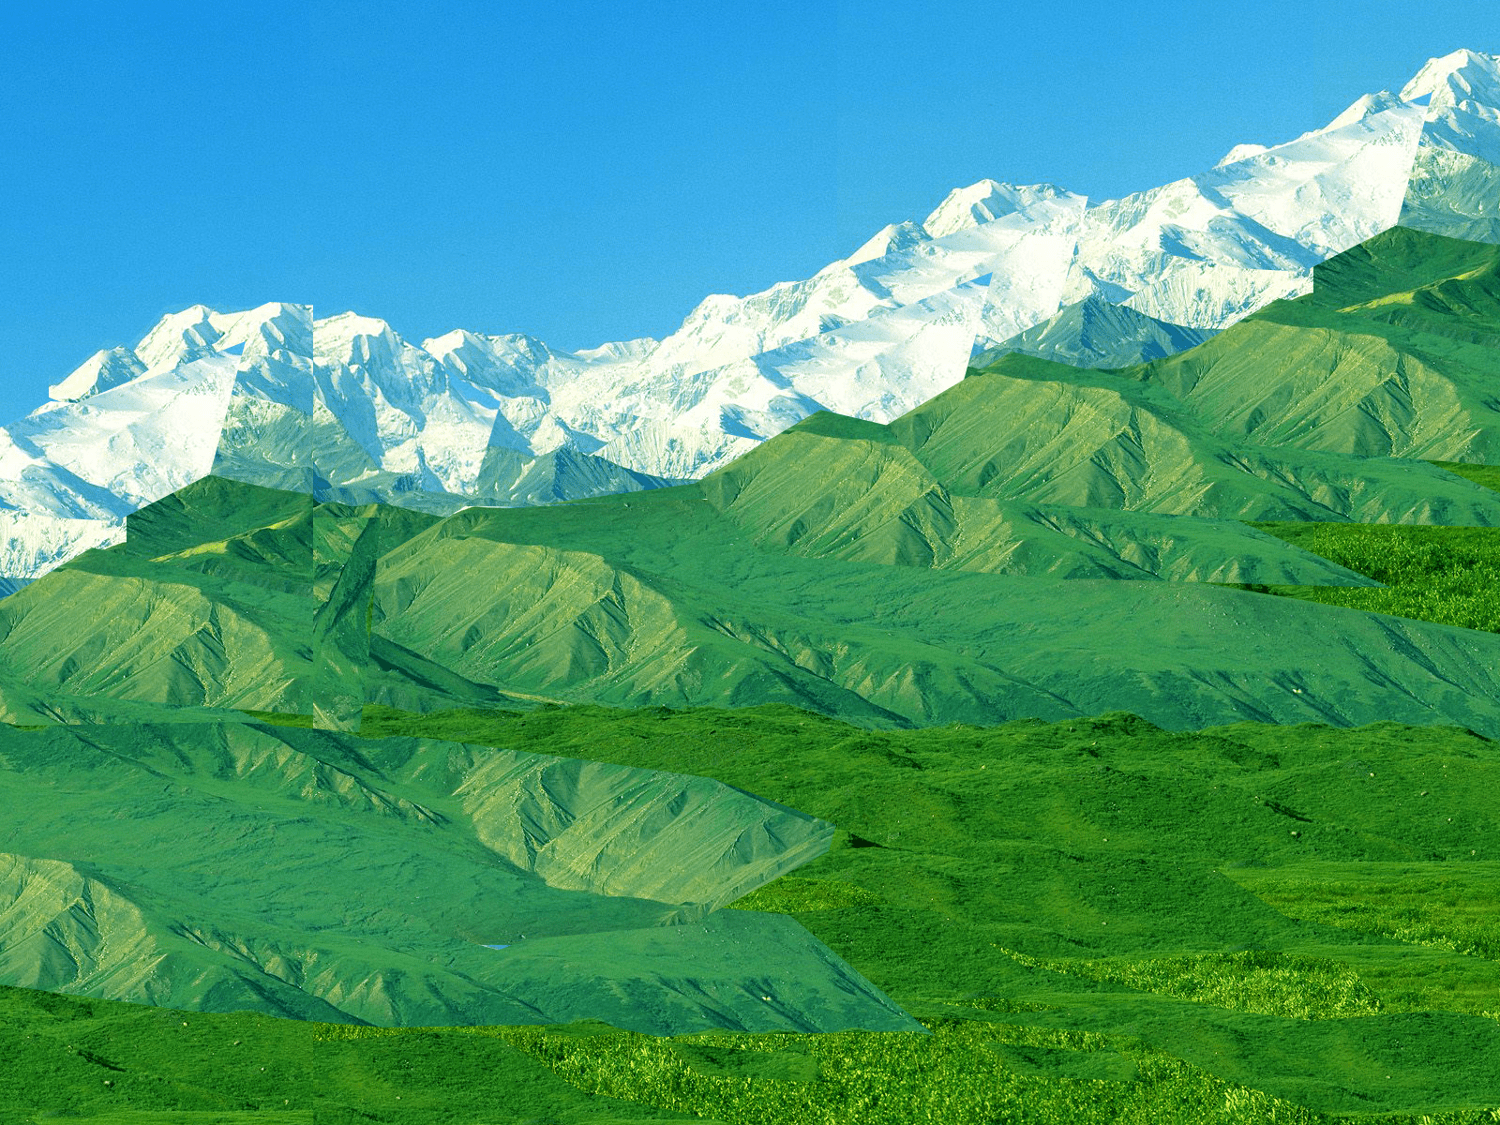 mountains by Petra Cortright